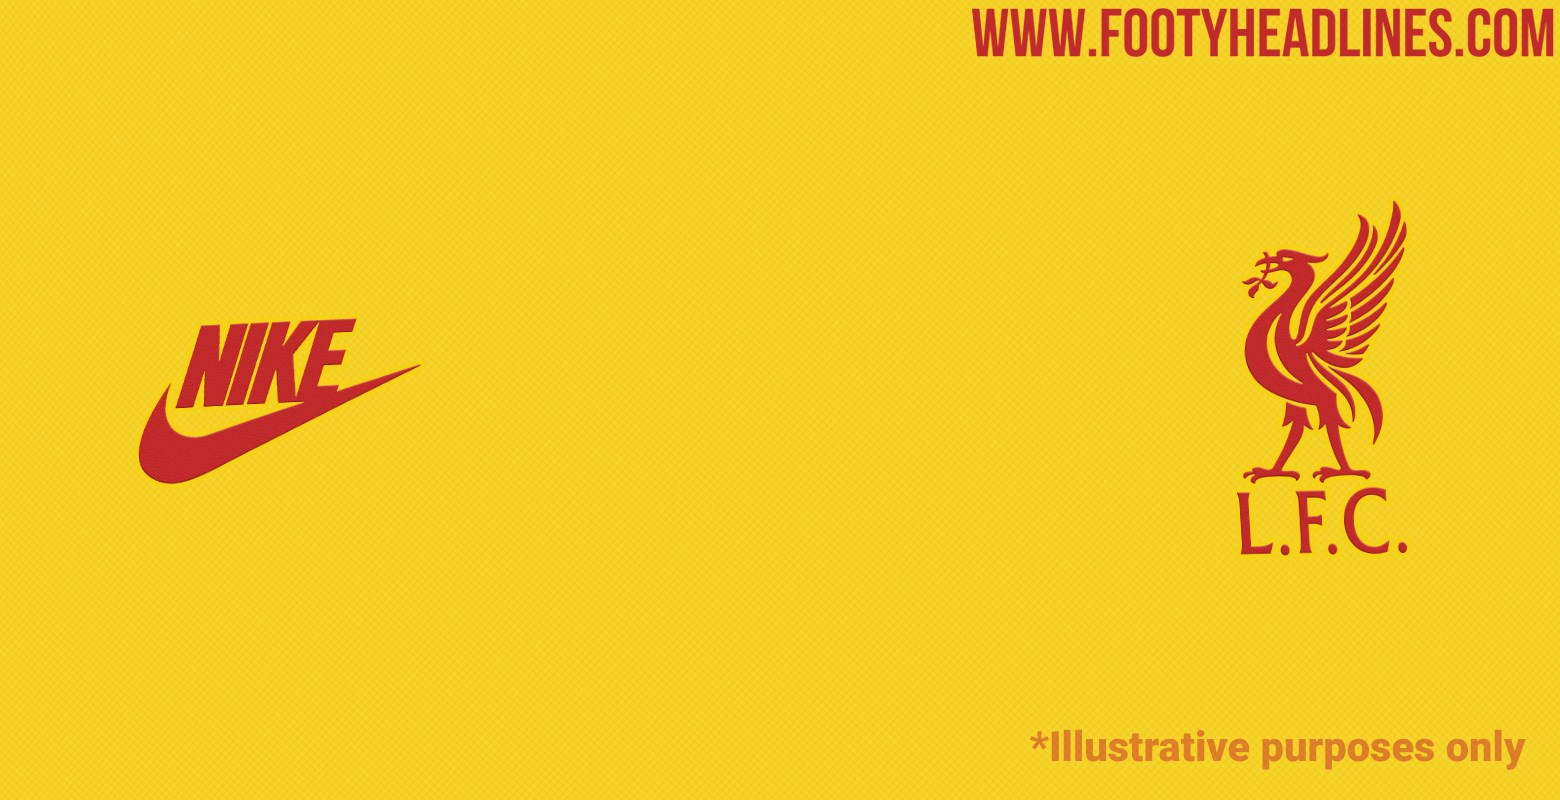 LEAKED: Nike Liverpool 21-22 Third Kit To Be Yellow ...